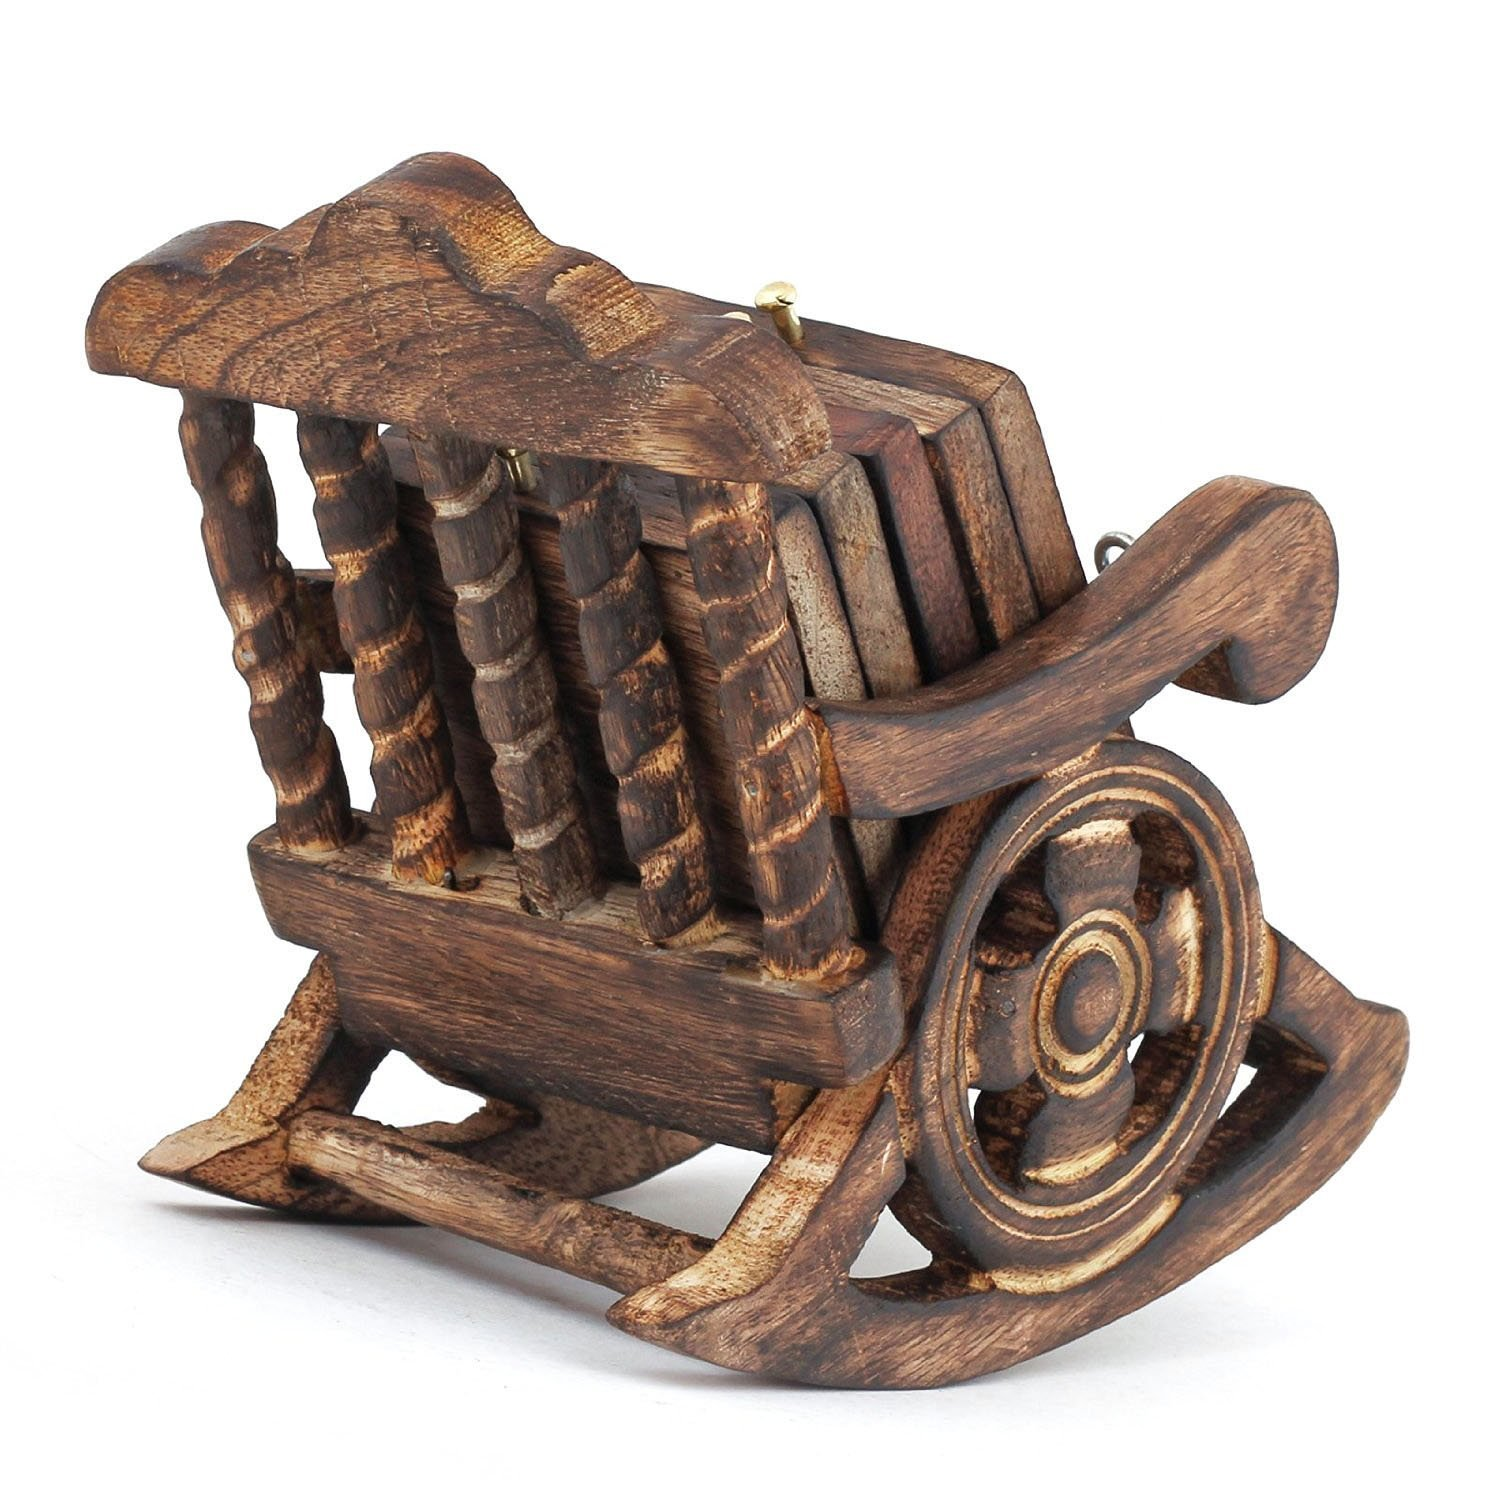 Wooden Antique Beautiful Miniature Rocking Chair Design Tea Coffee Coaster